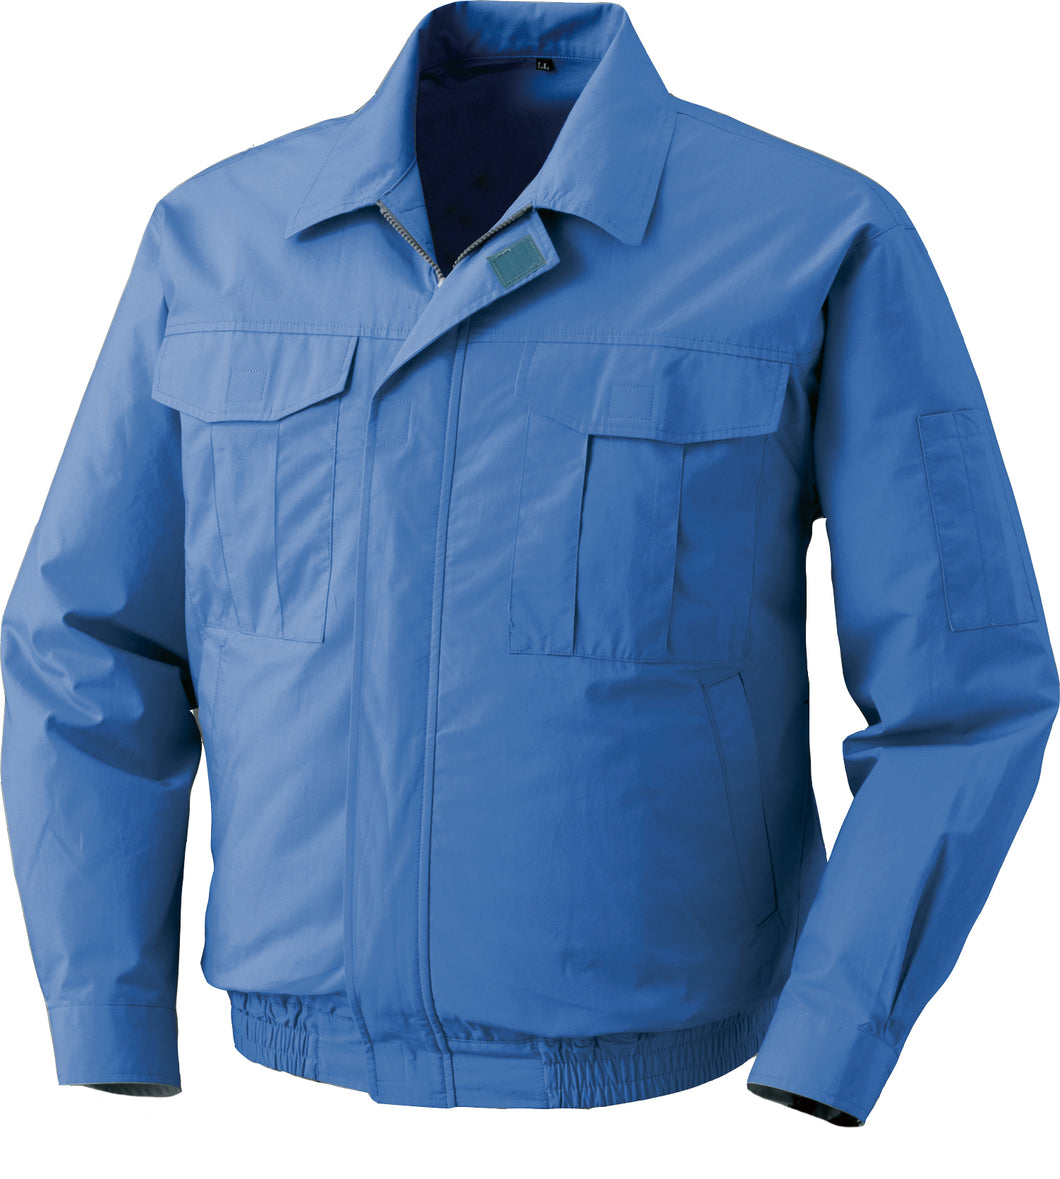 Best Cooling Jacket (Replacement Jacket)  - Long Sleeve 100% Cotton for Construction Work